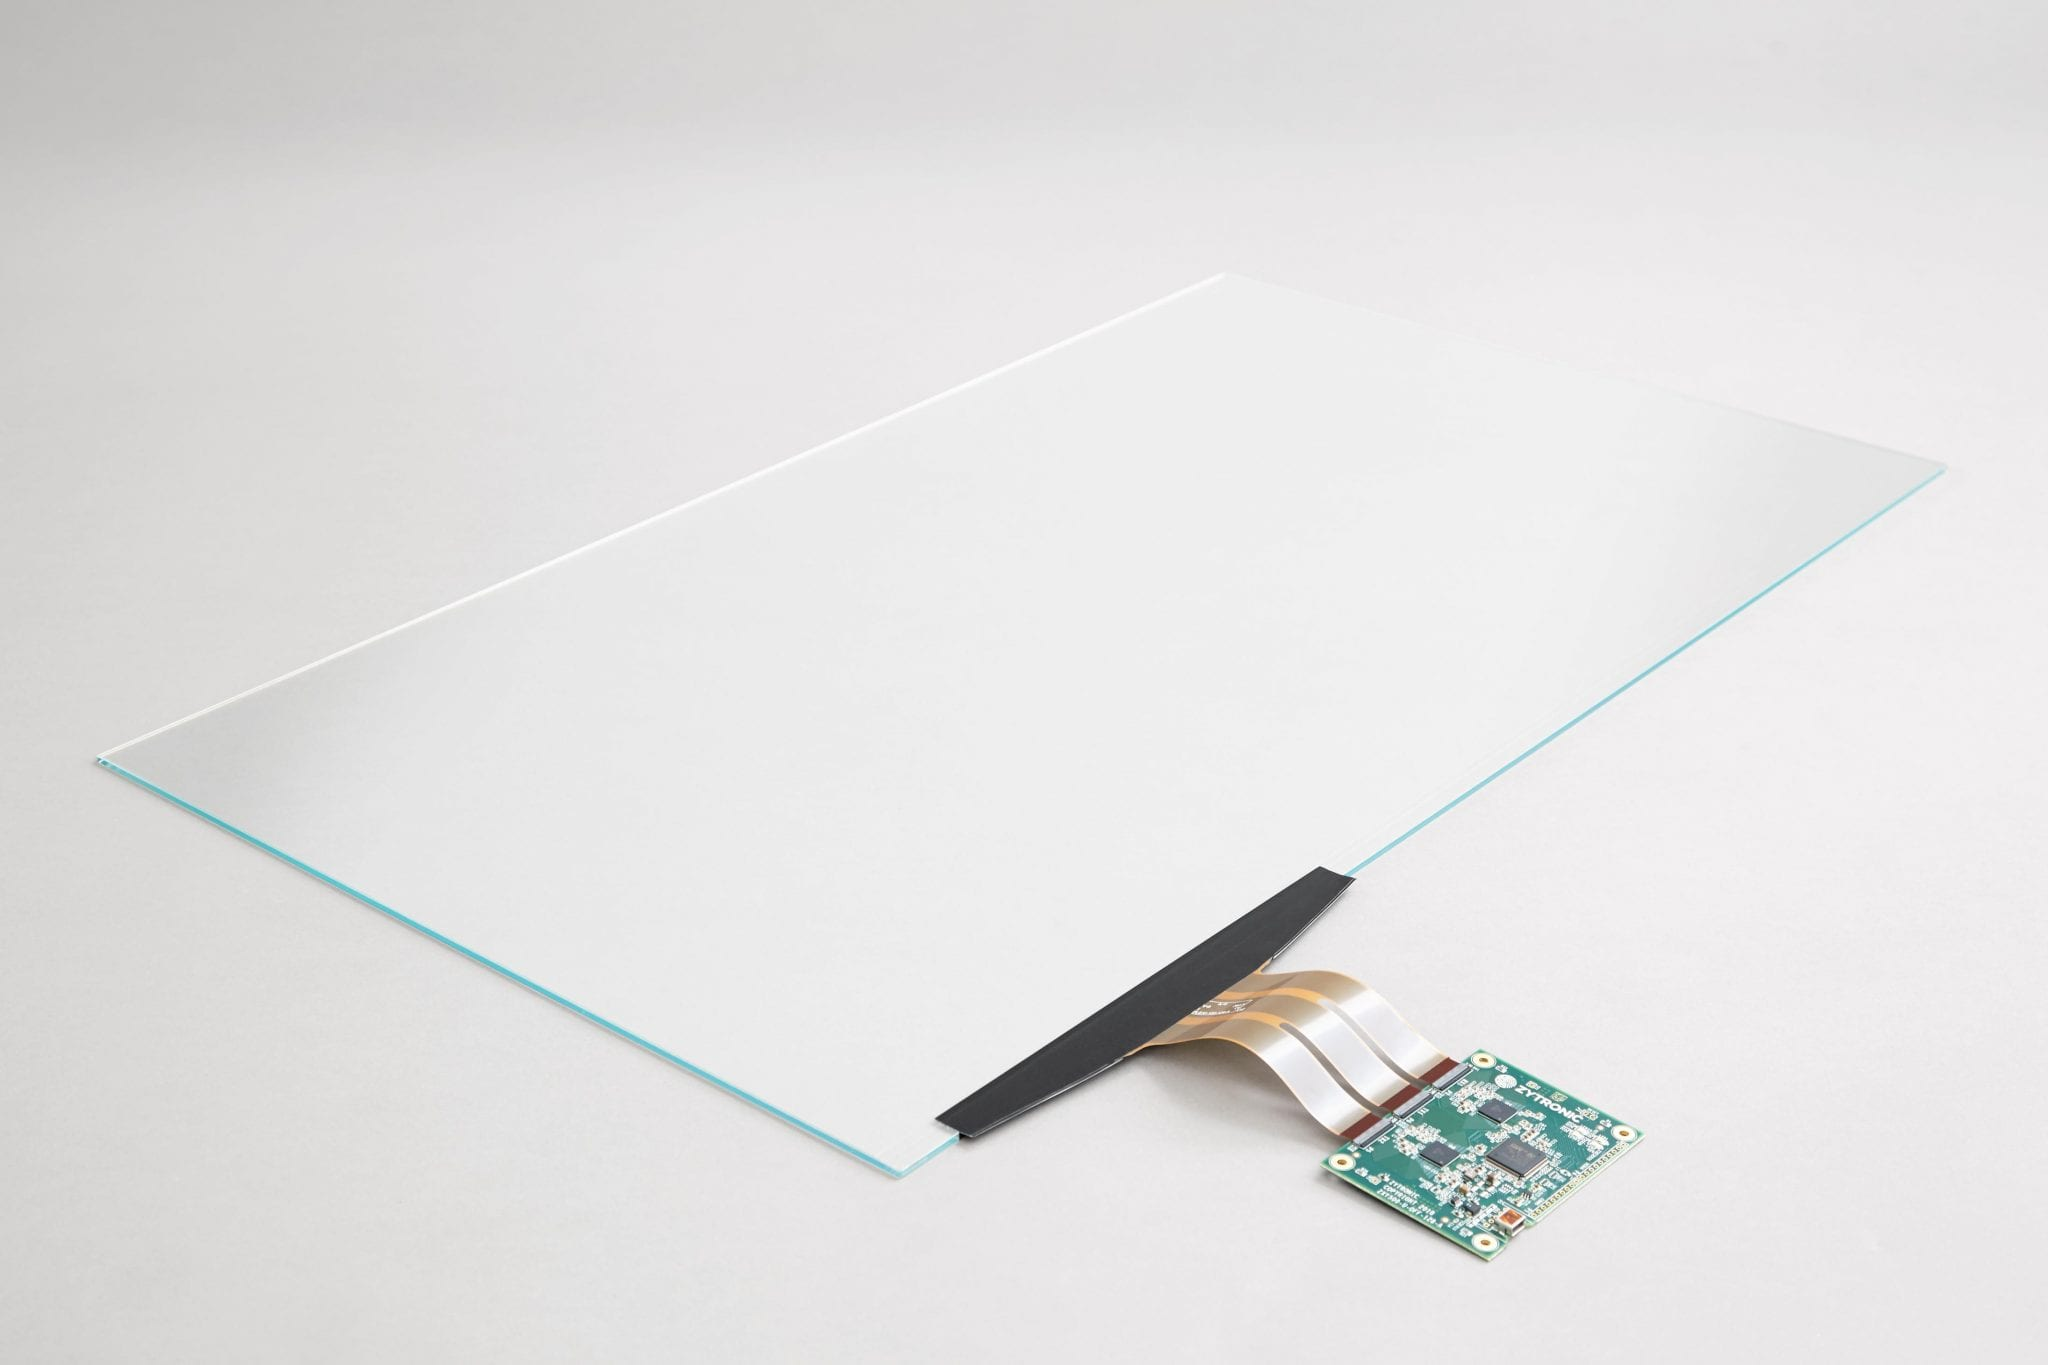 A 32 inch sensor screen powered by a Zytronic circuit board